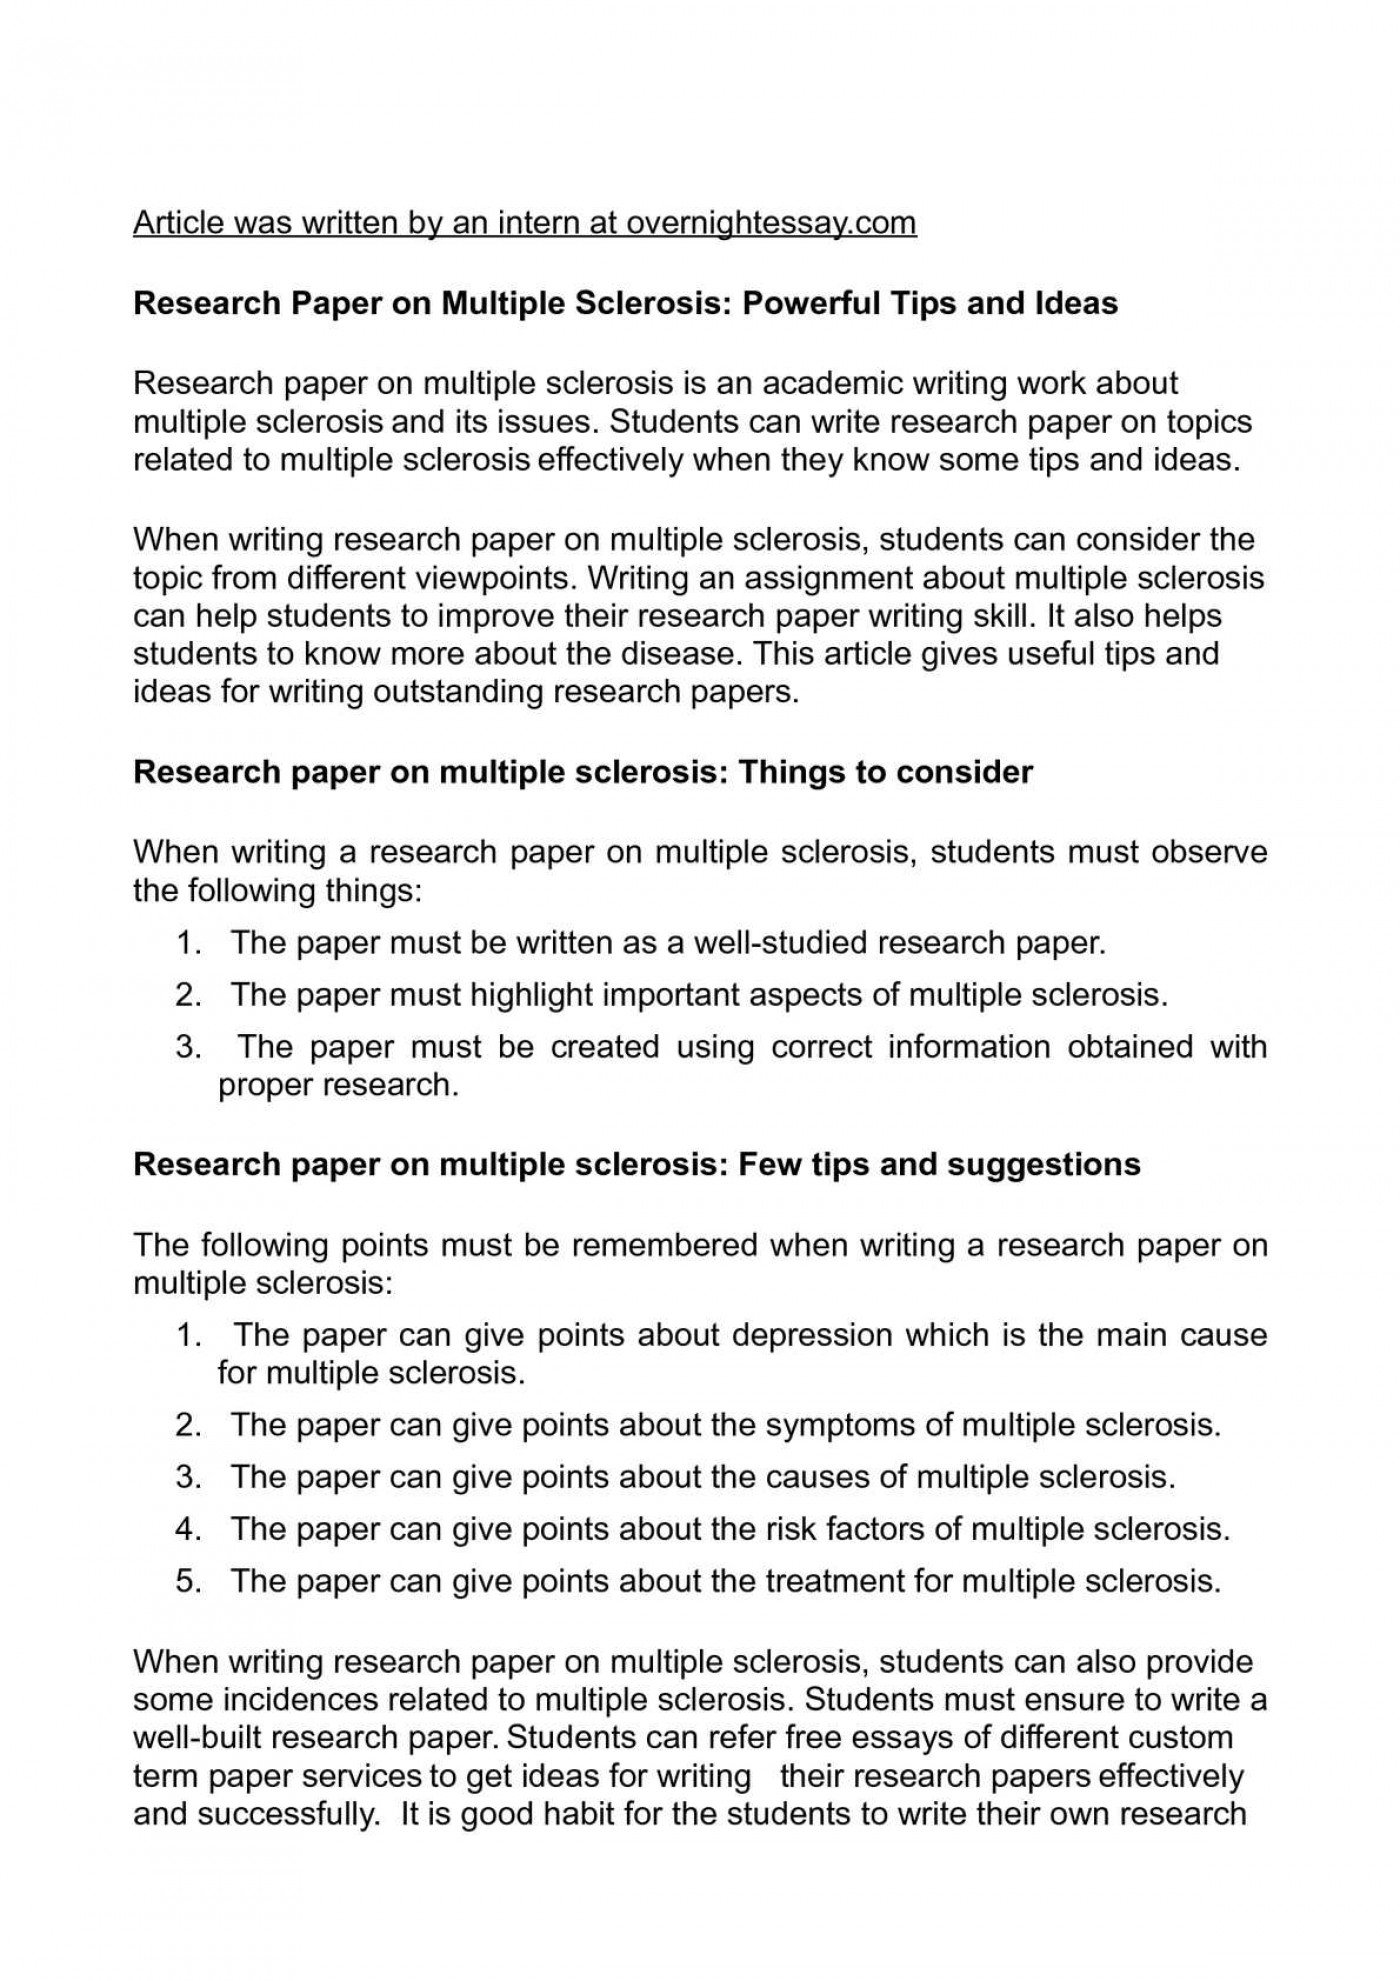 015 P1 Research Paper Write Frightening Papers In Latex My For Me Online Free 1400